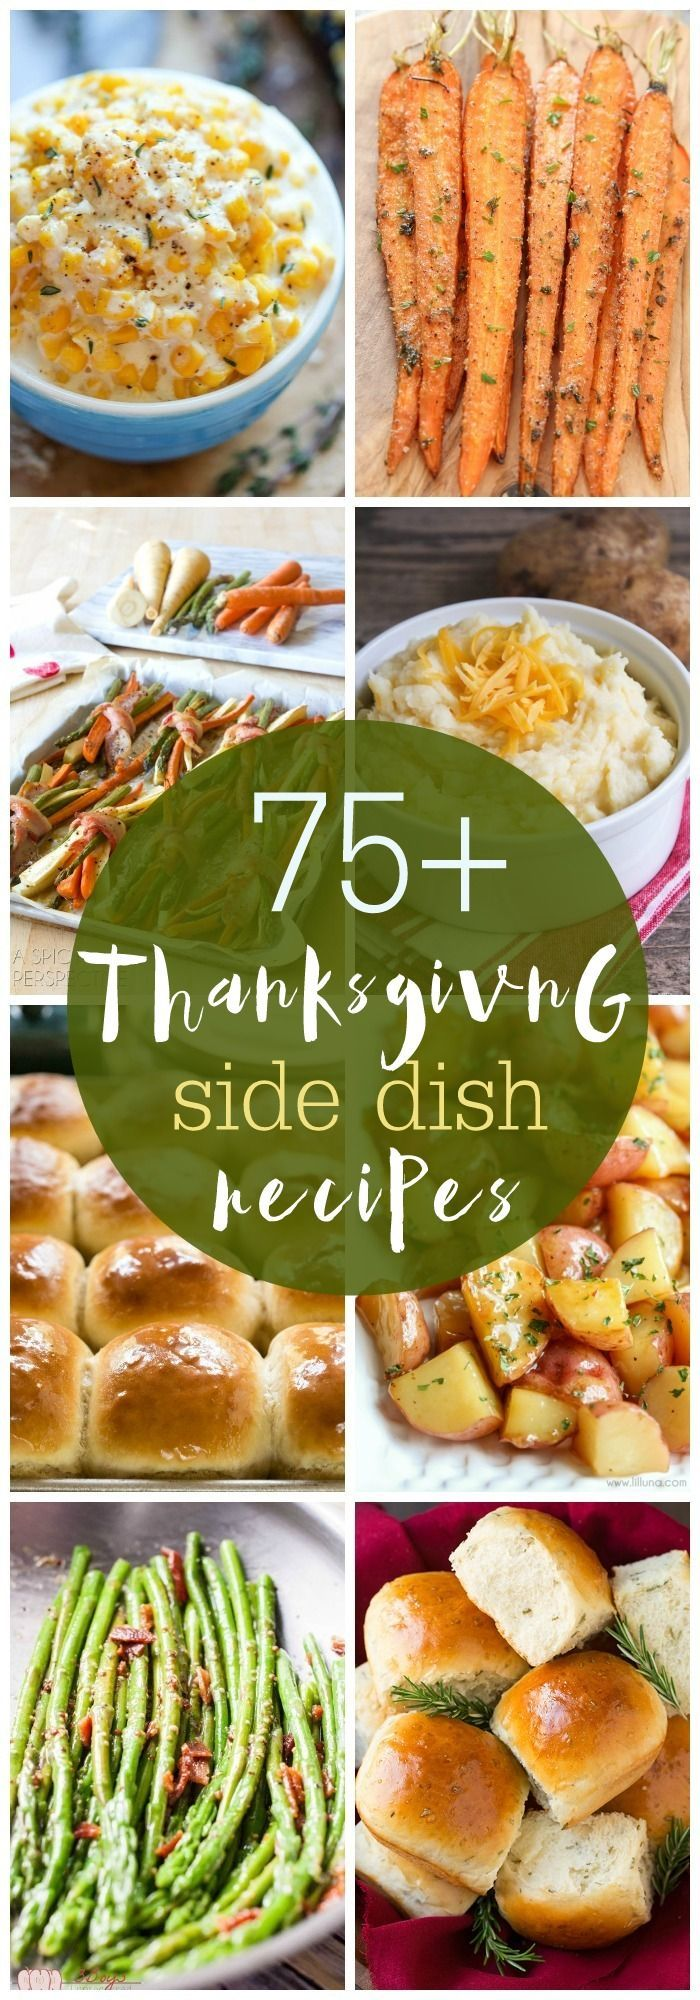 75+ Thanksgiving Side Dish Recipes http://FoodBlogs.com